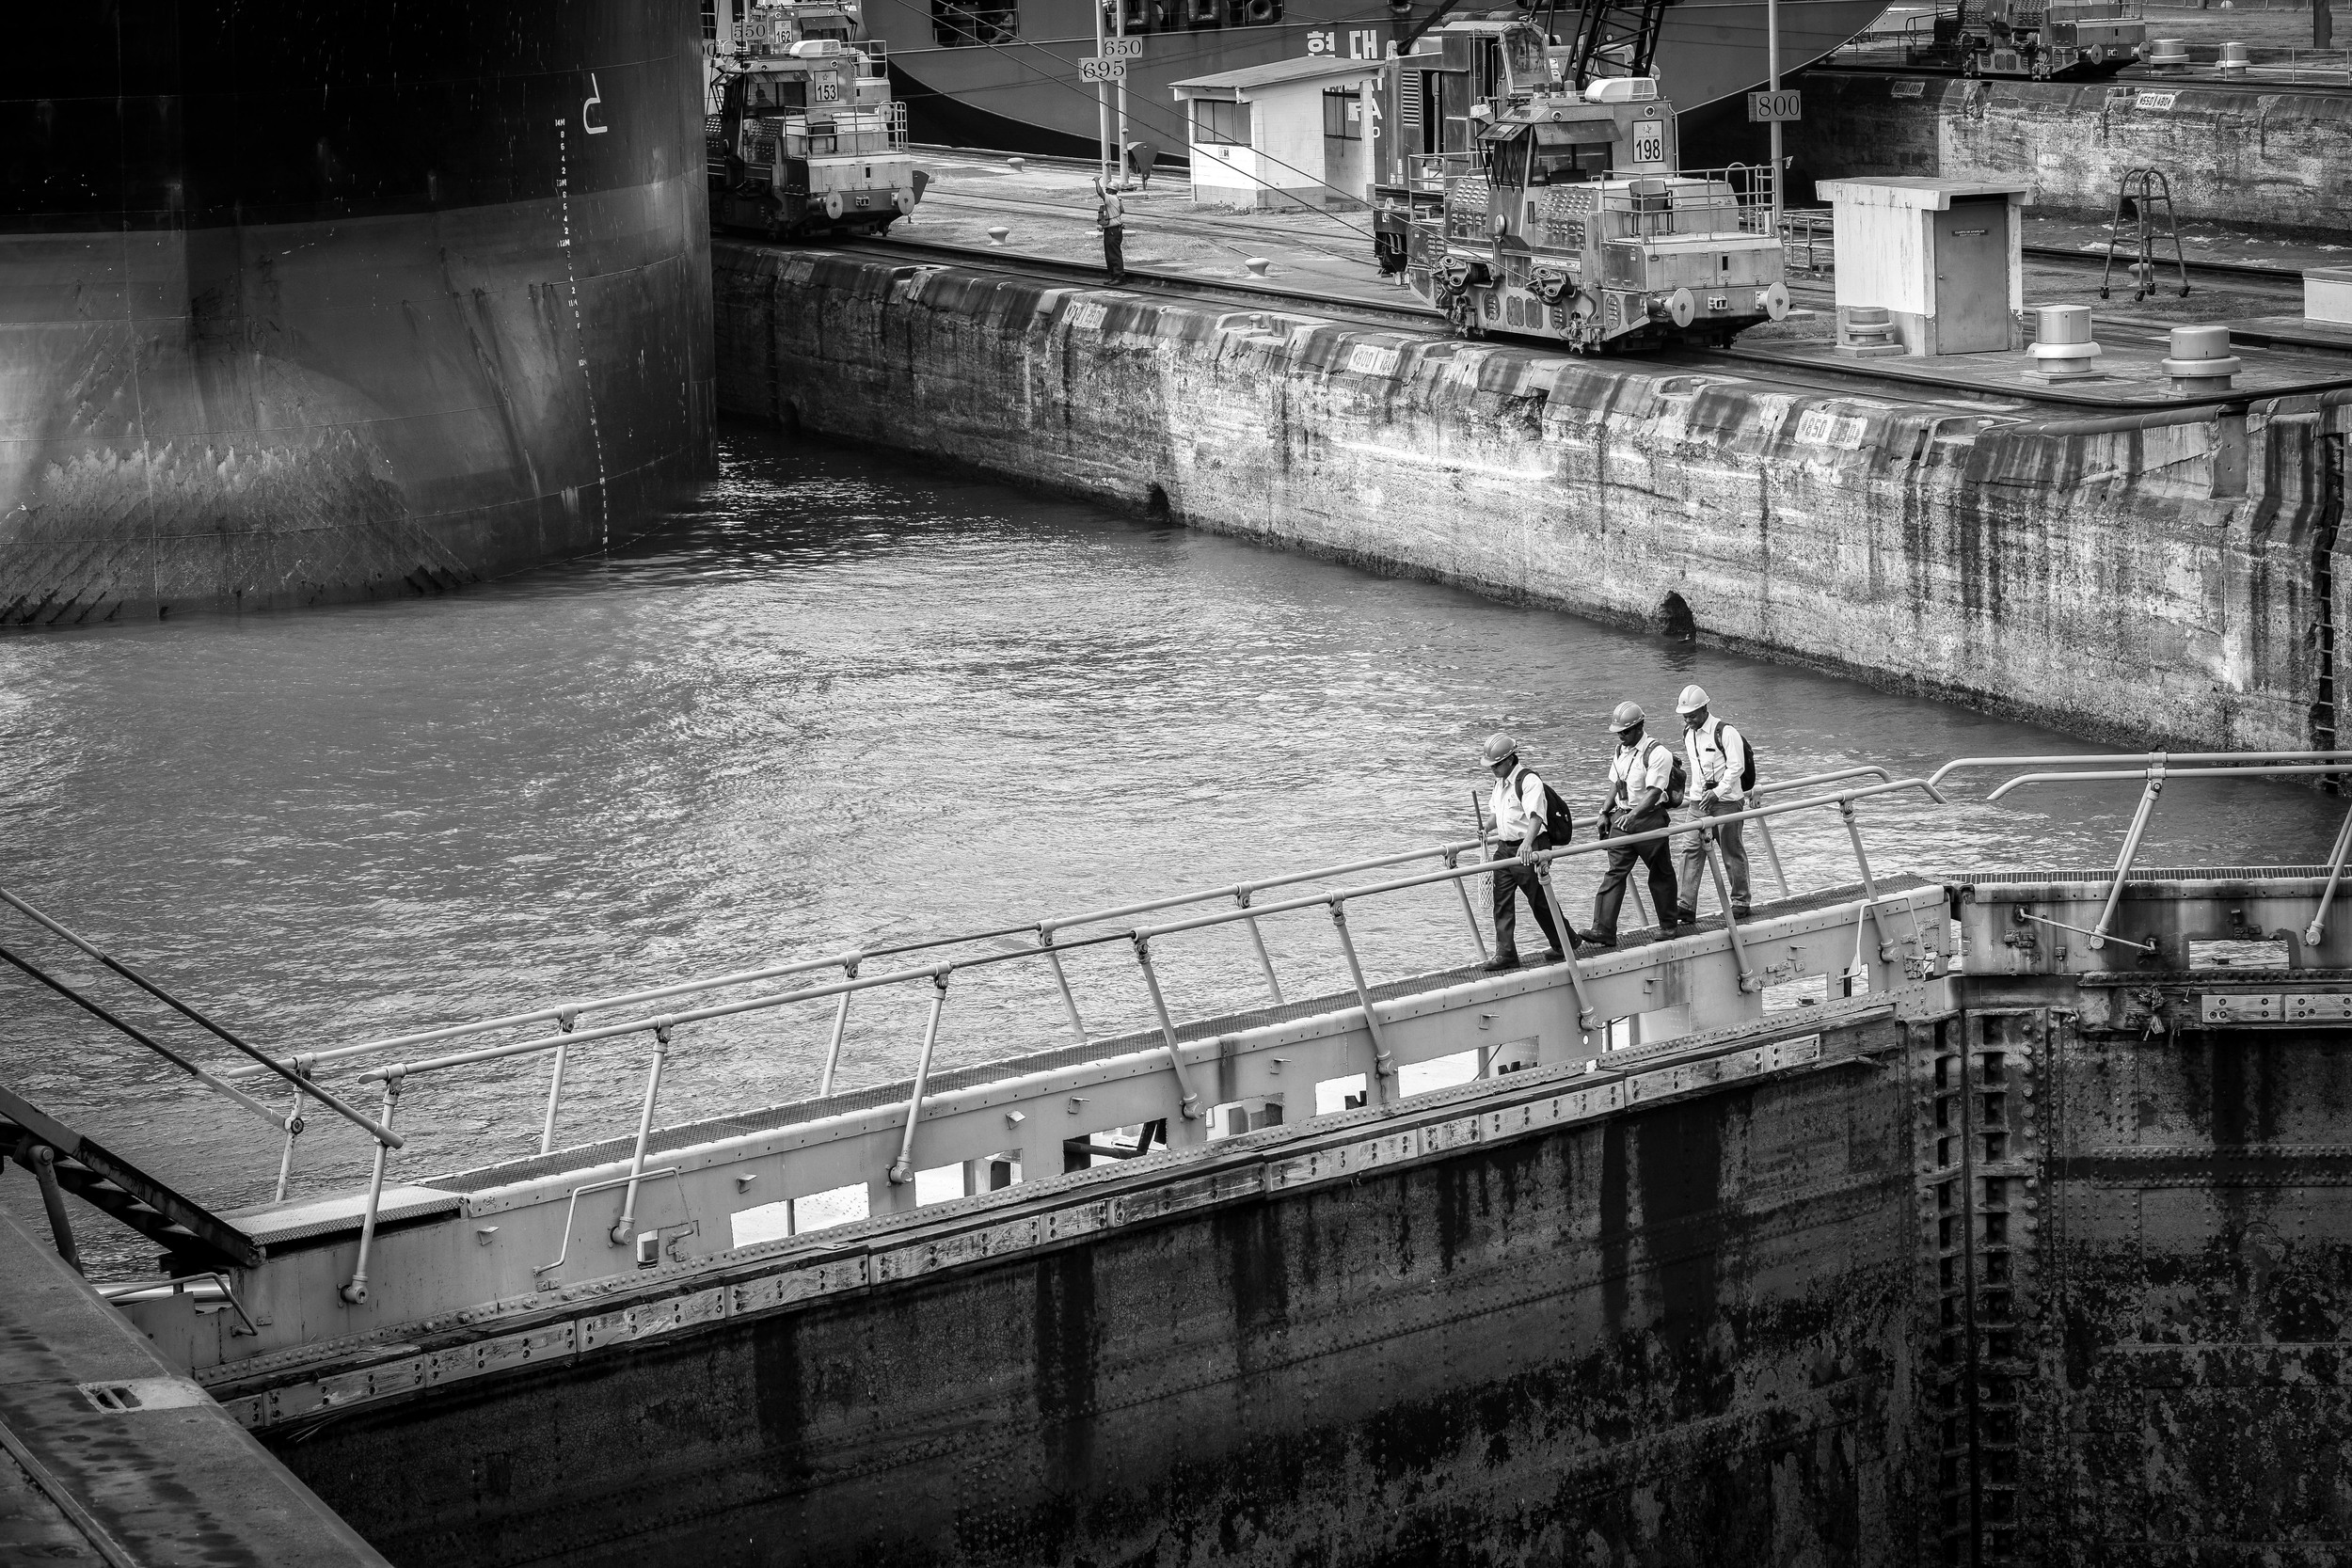 Panama Canal workers crossing a lock